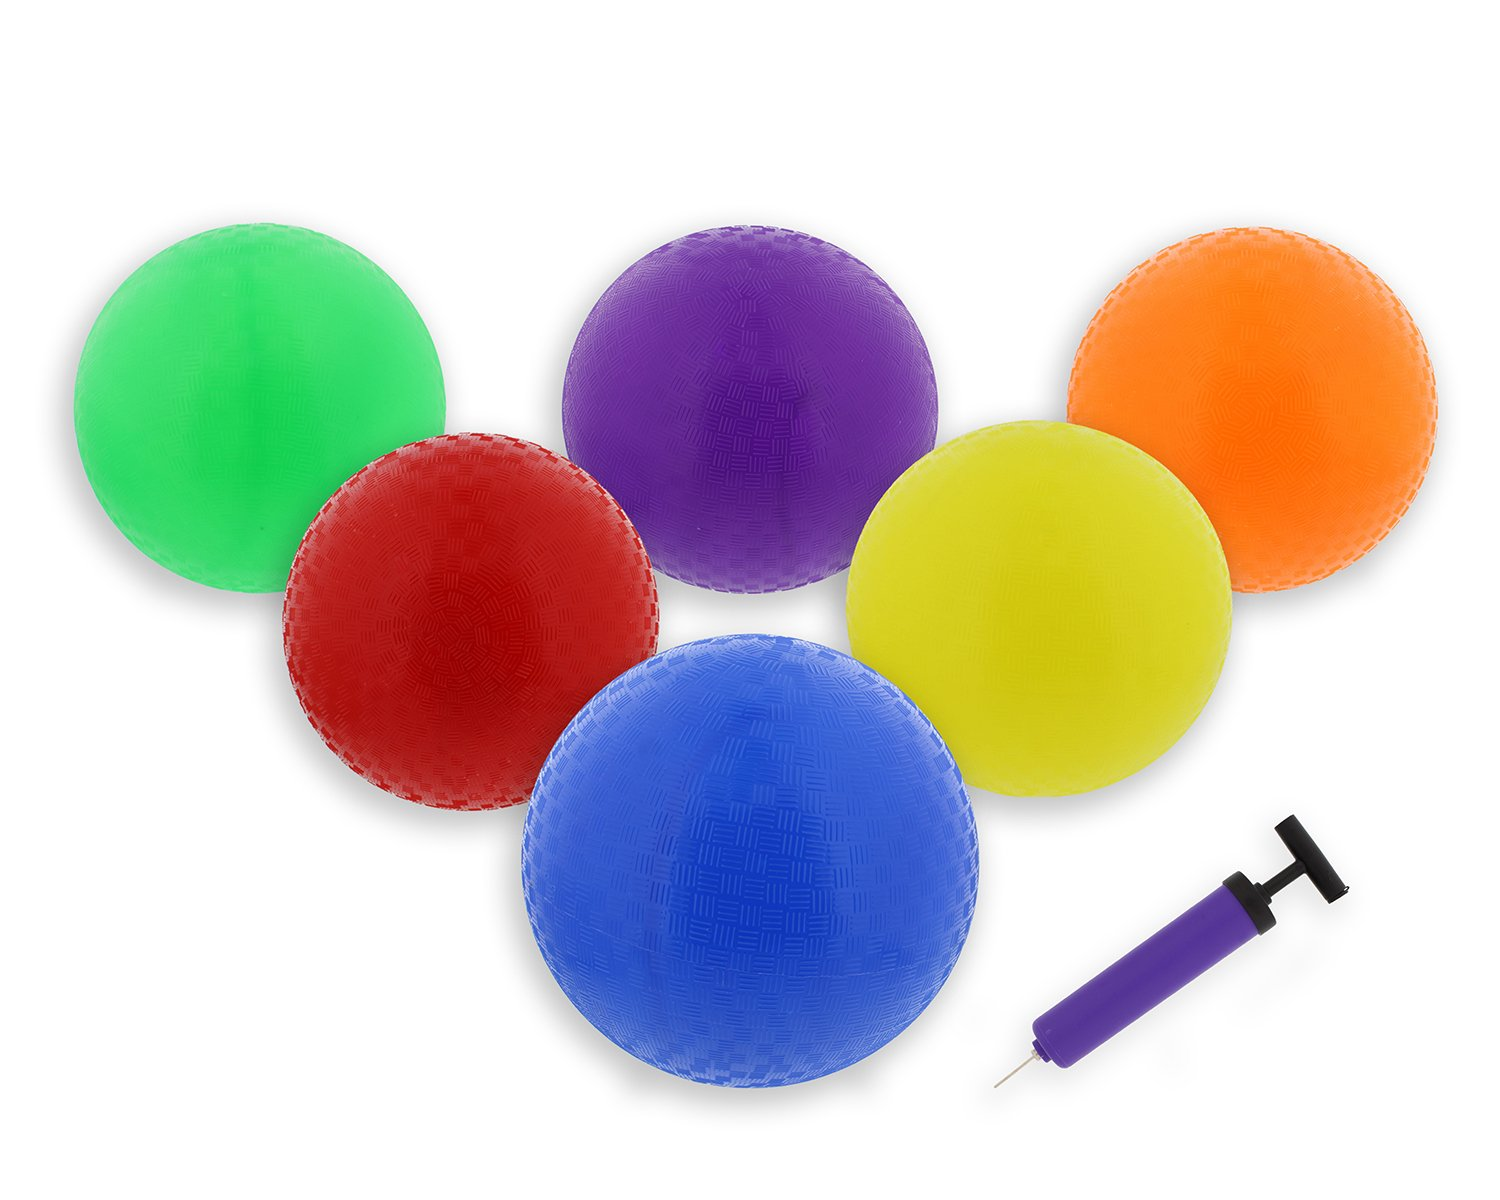 Get Out! Colorful 8.5in Play Ball 6pk Set & Inflator, Latex Free Kids Small Rubber Playground Balls & Hand Pump by Get Out!